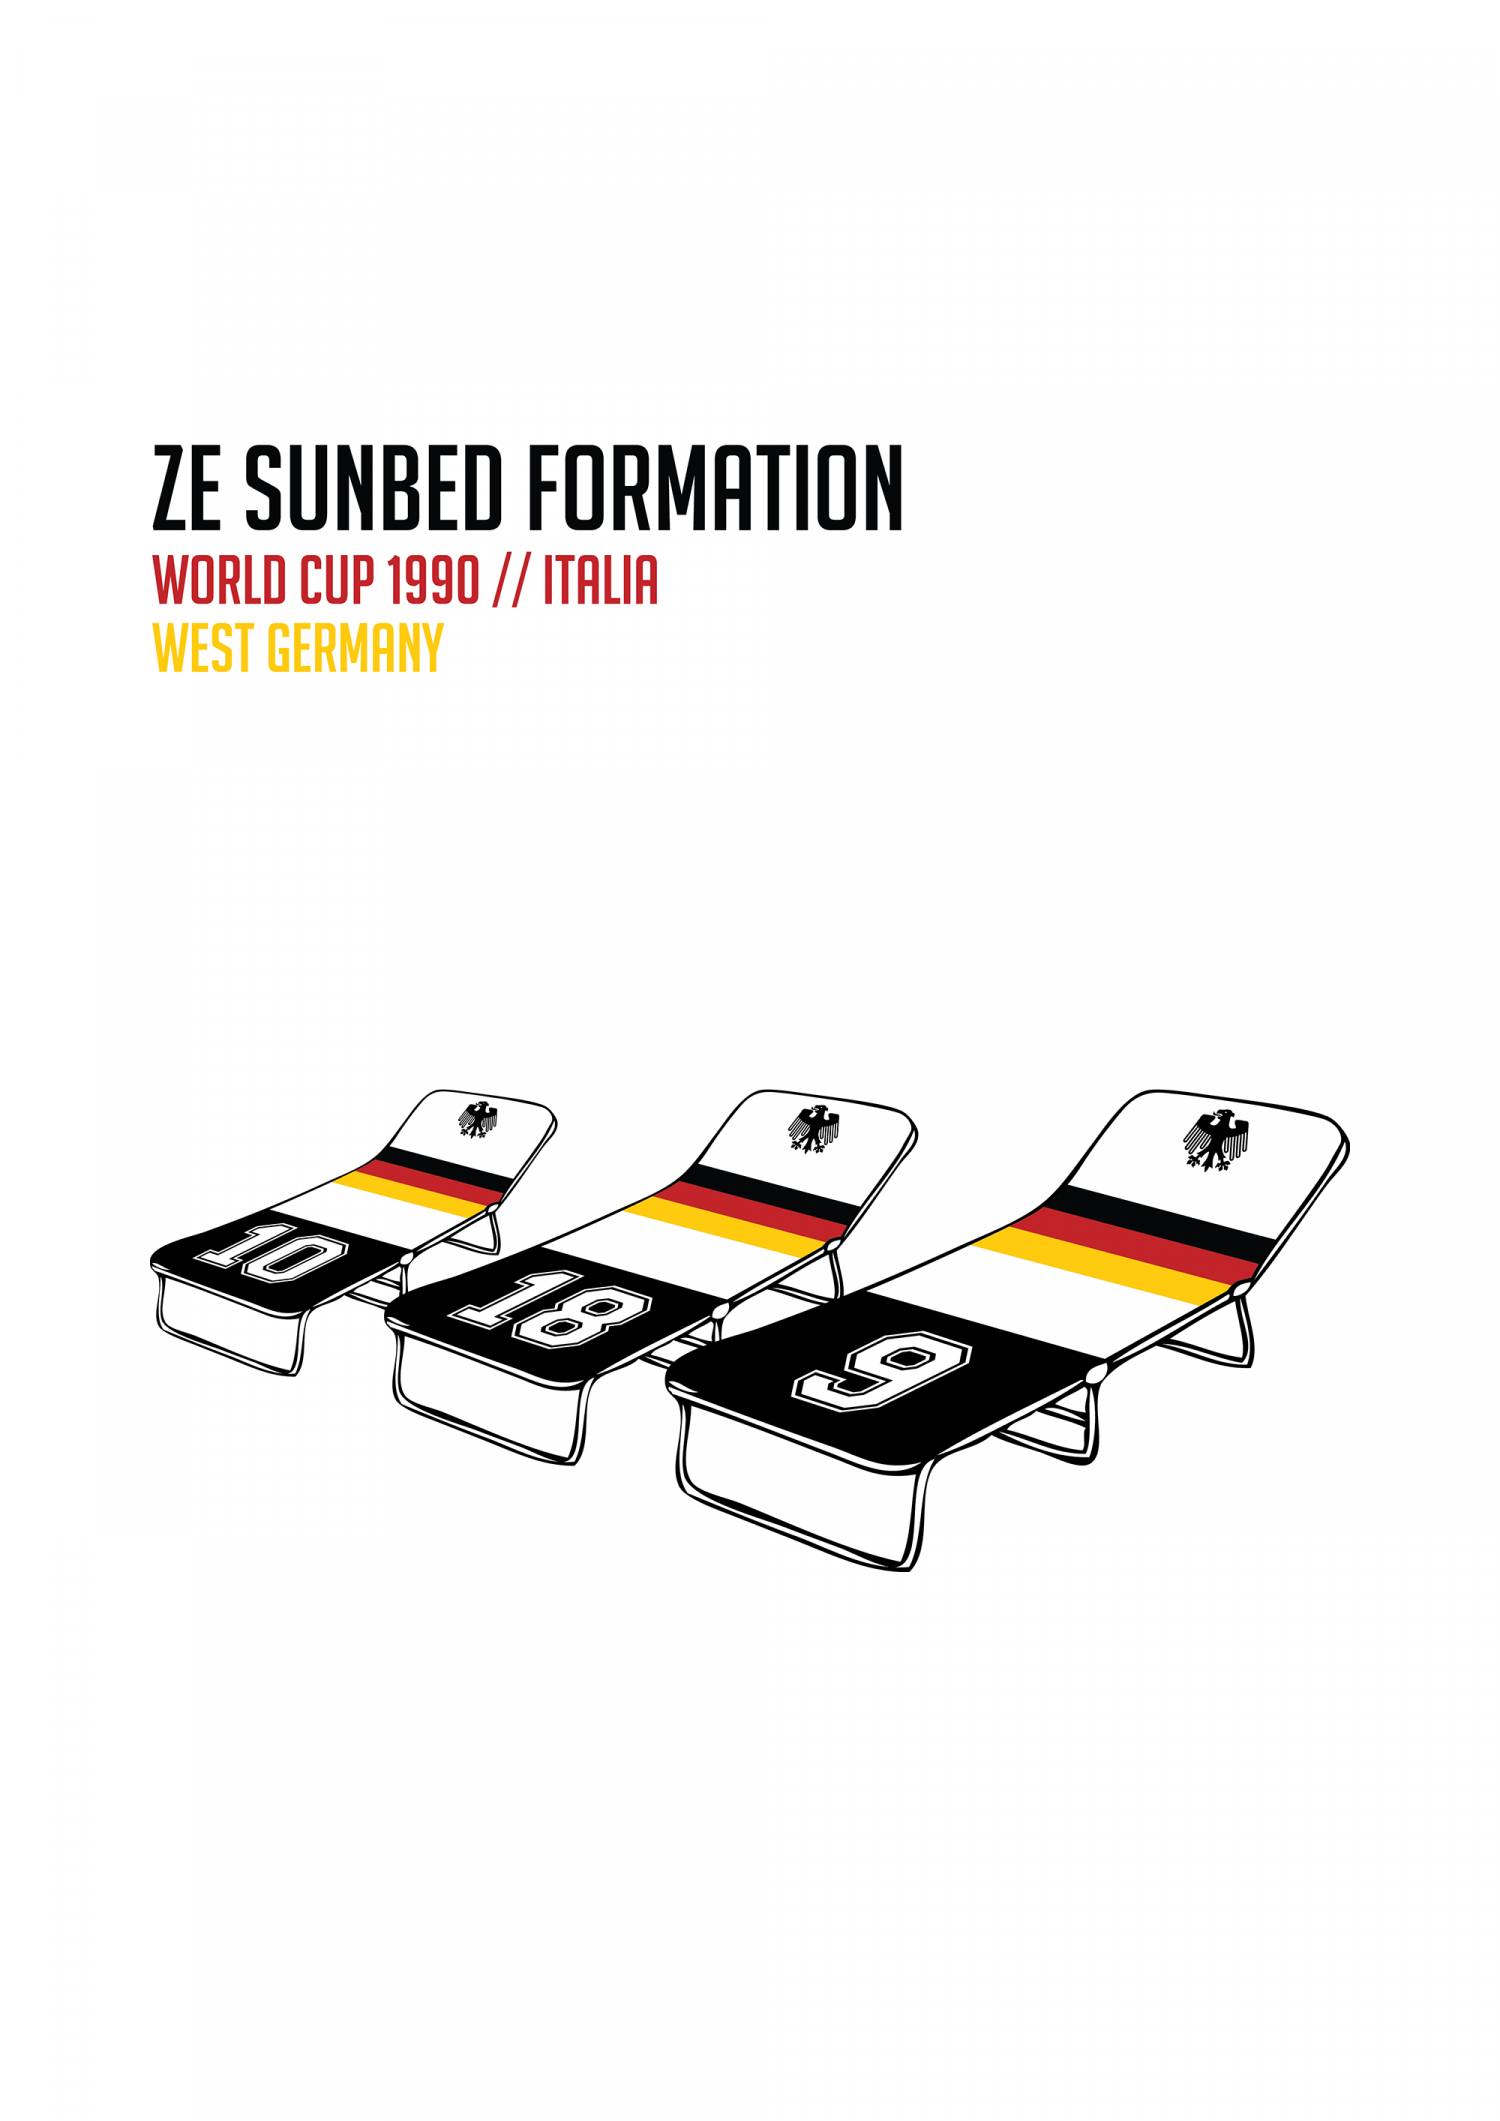 Ze Sunbed Formation Infographic